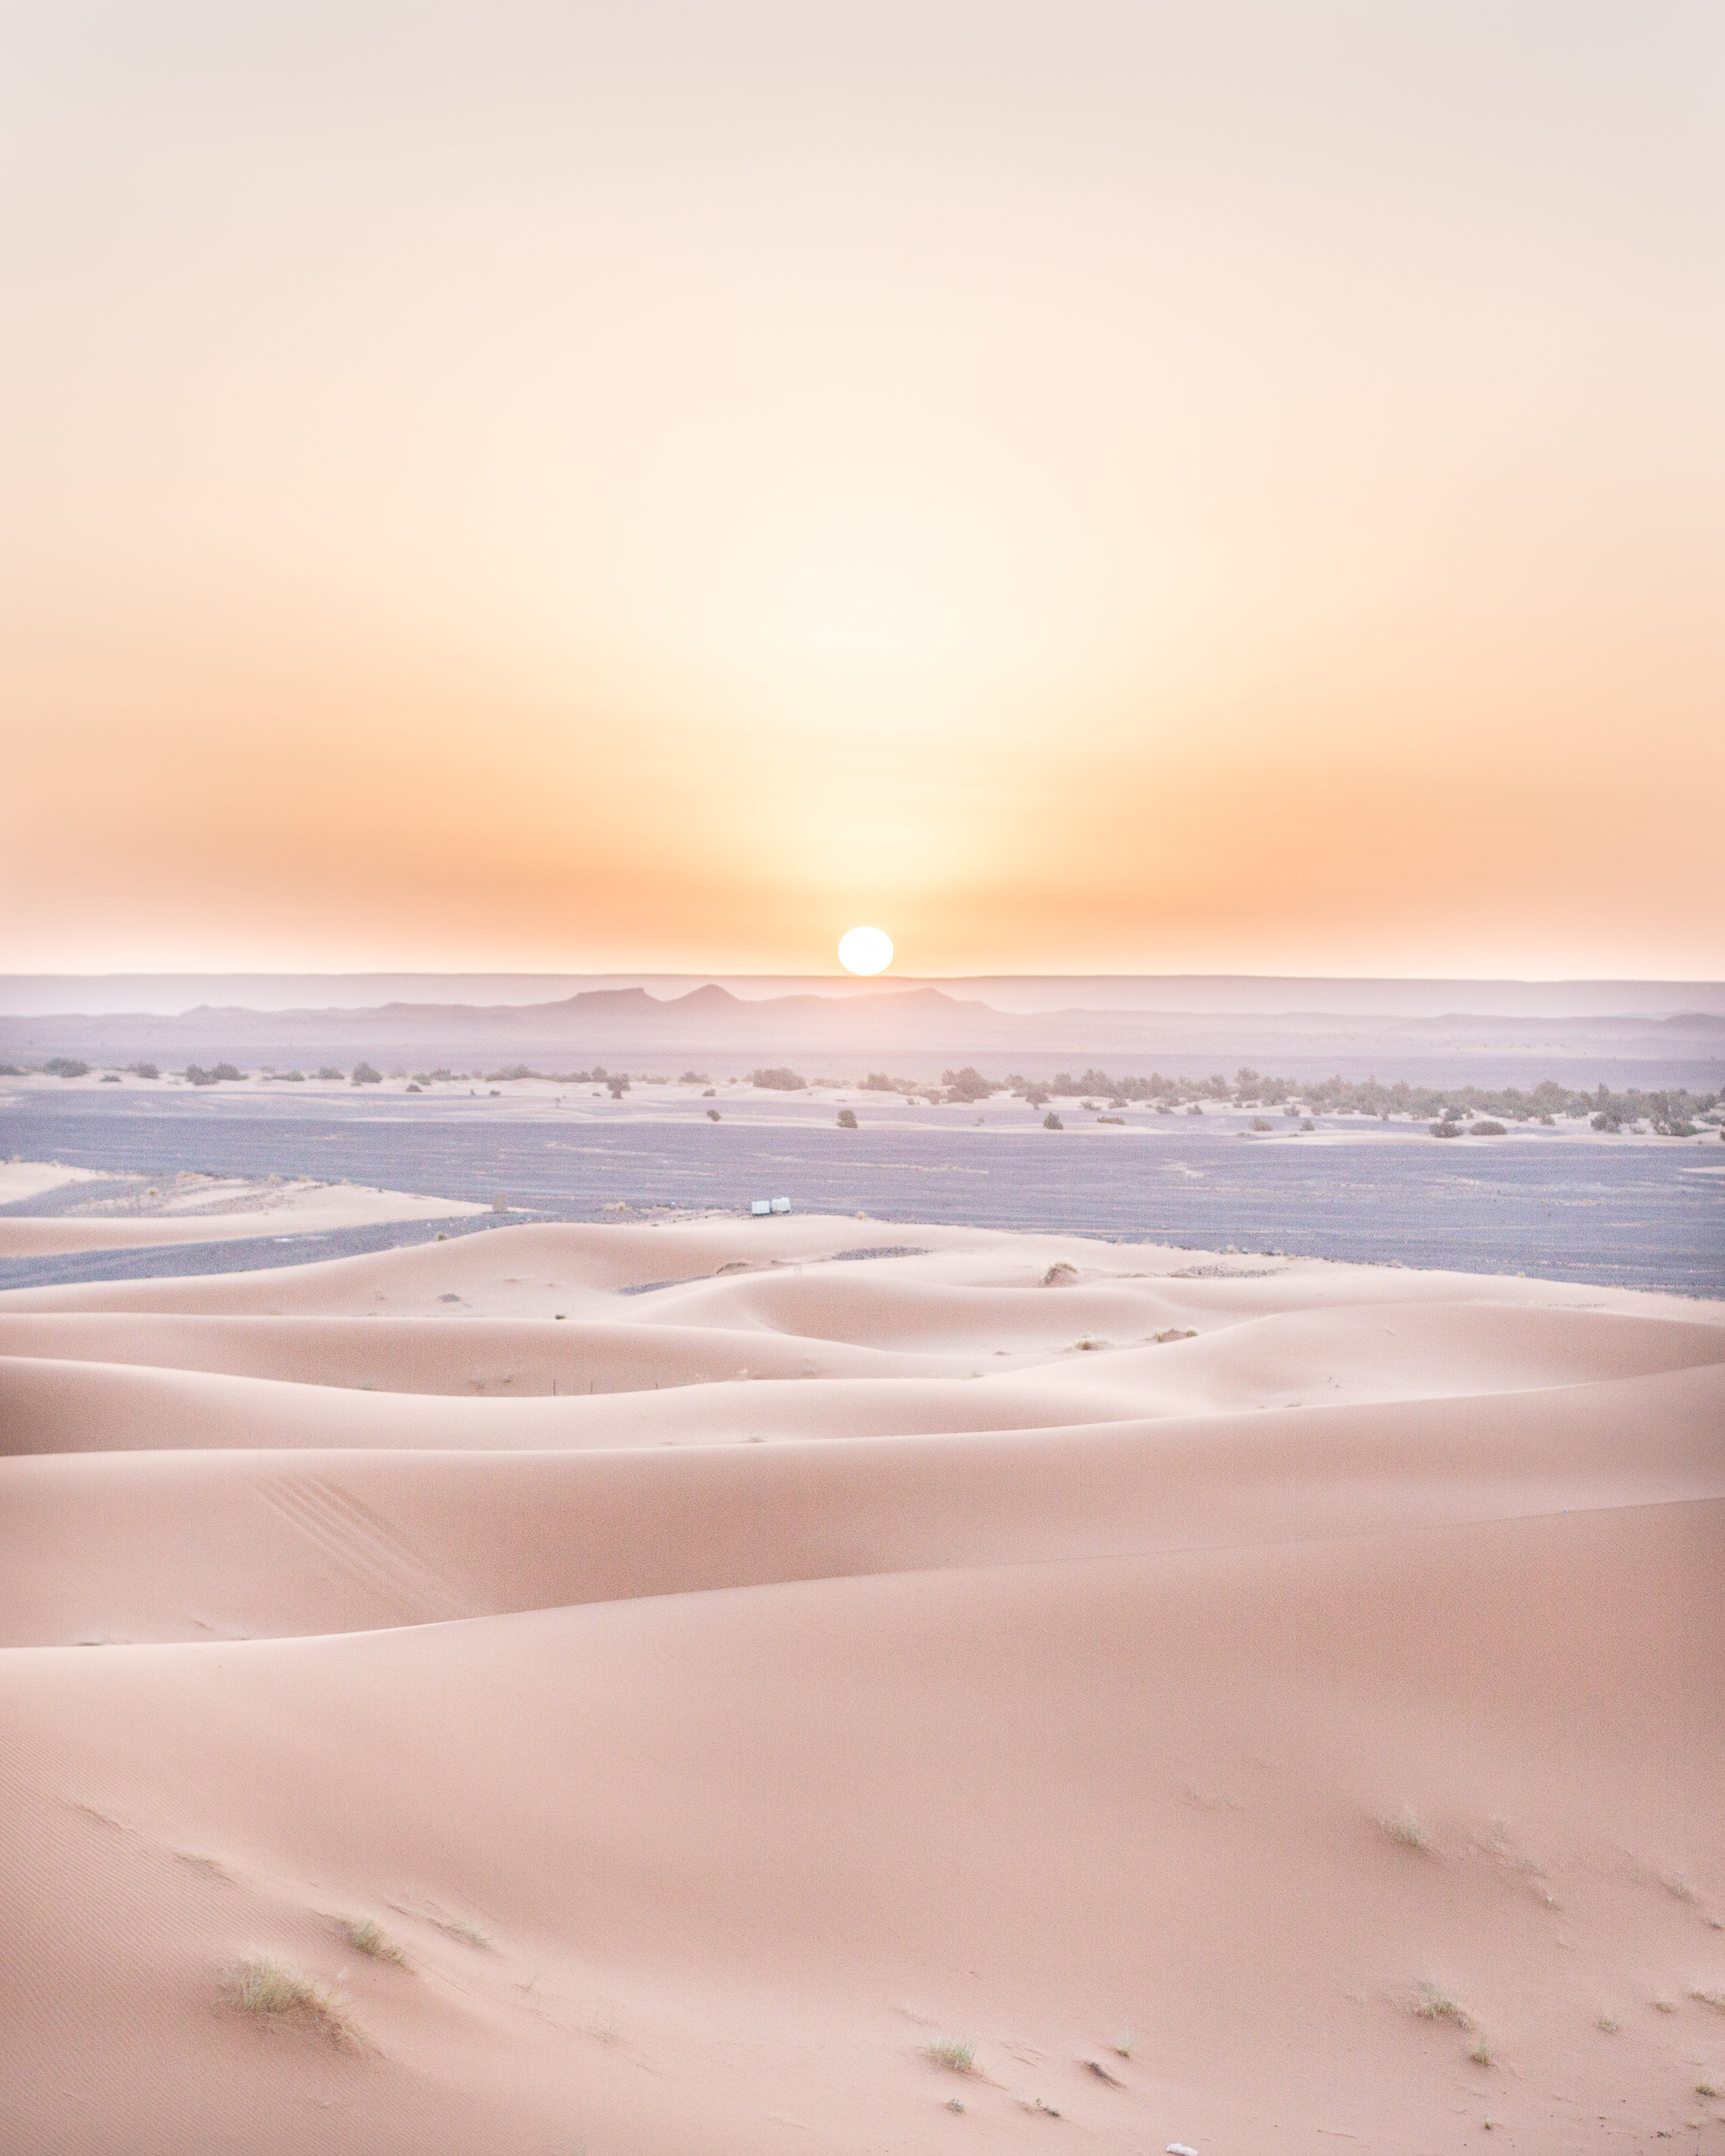 05:20 am, the sun rises over the Sahara Desert.